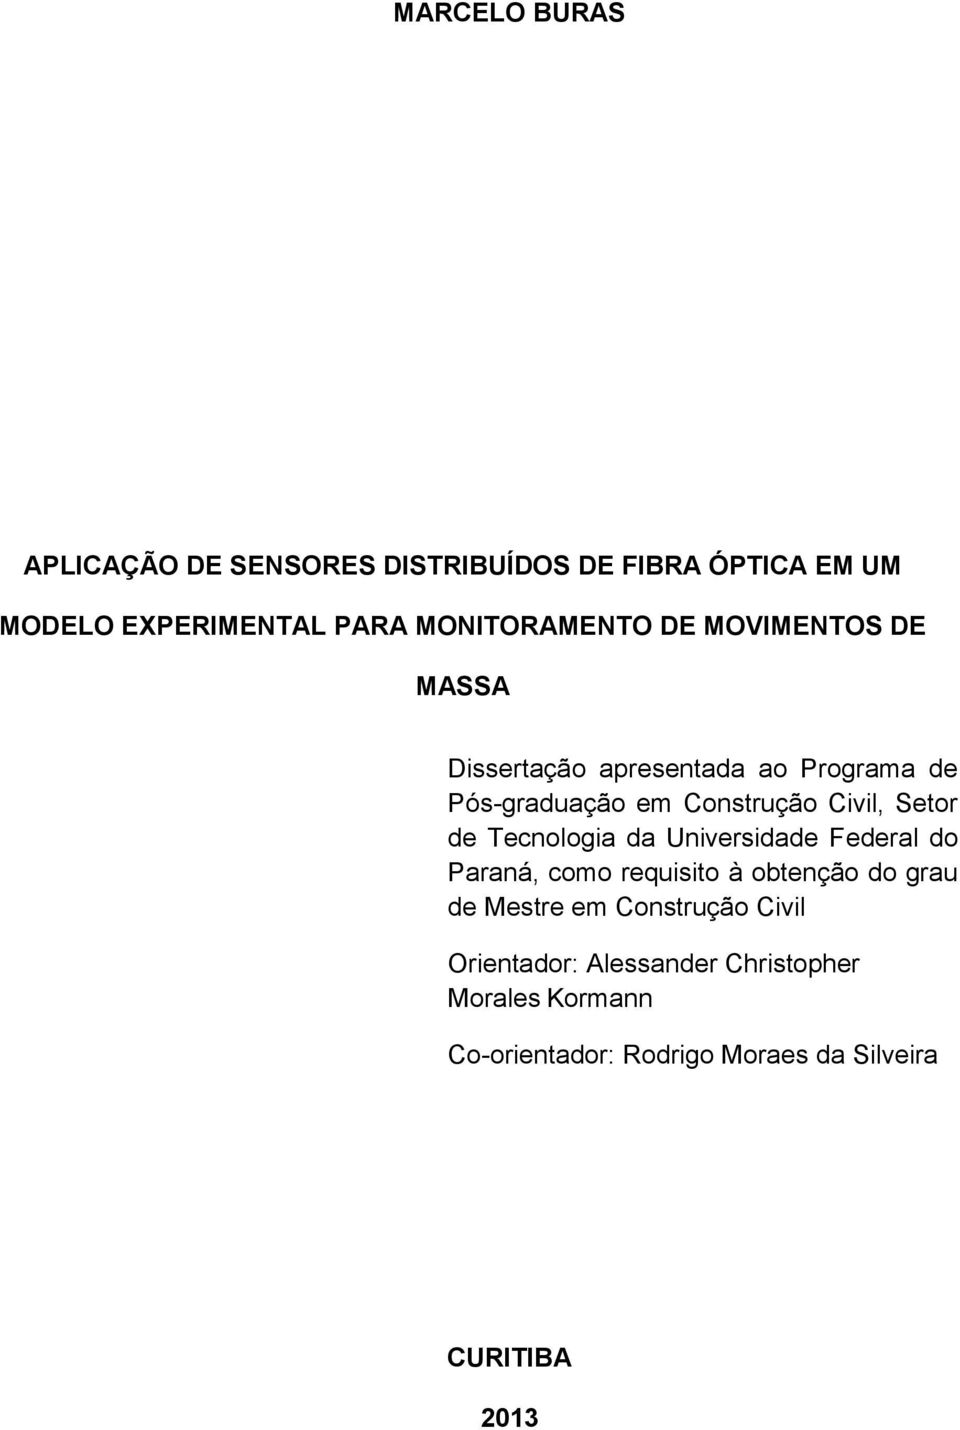 Civil, Setor de Tecnologia da Universidade Federal do Paraná, como requisito à obtenção do grau de Mestre